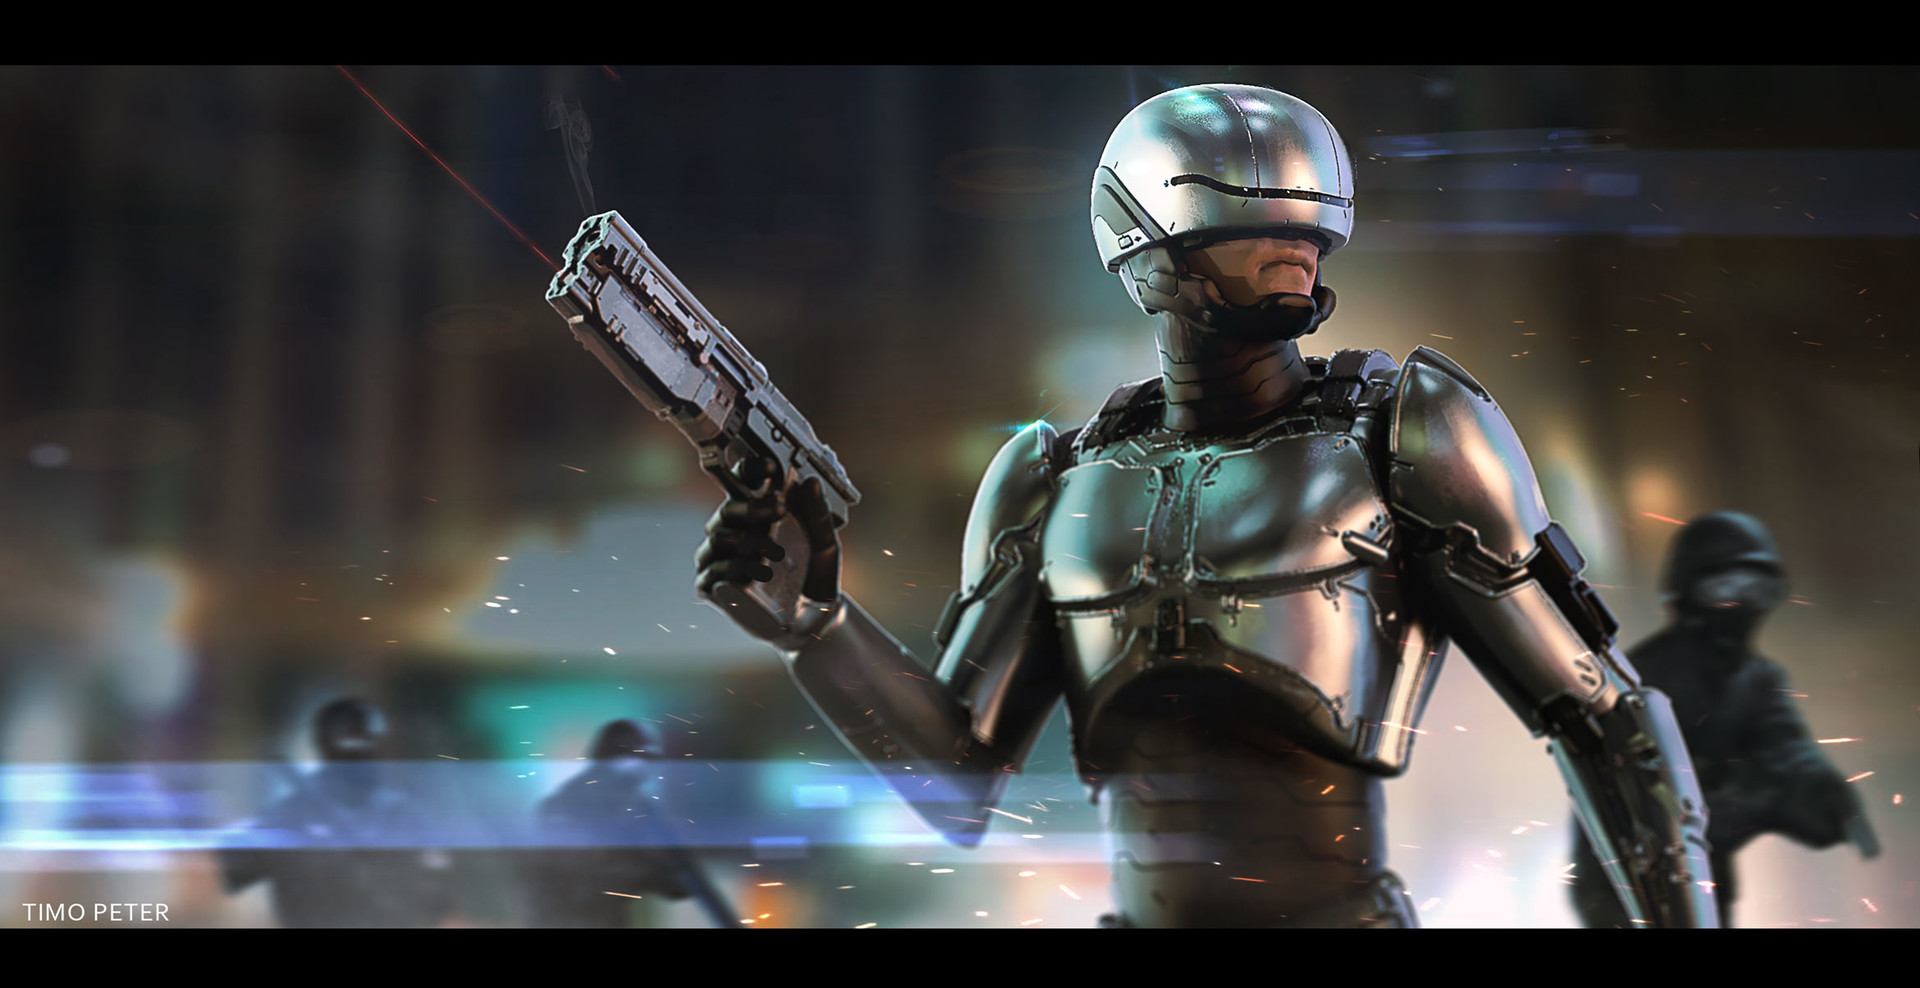 Timo peter robocop cinematic